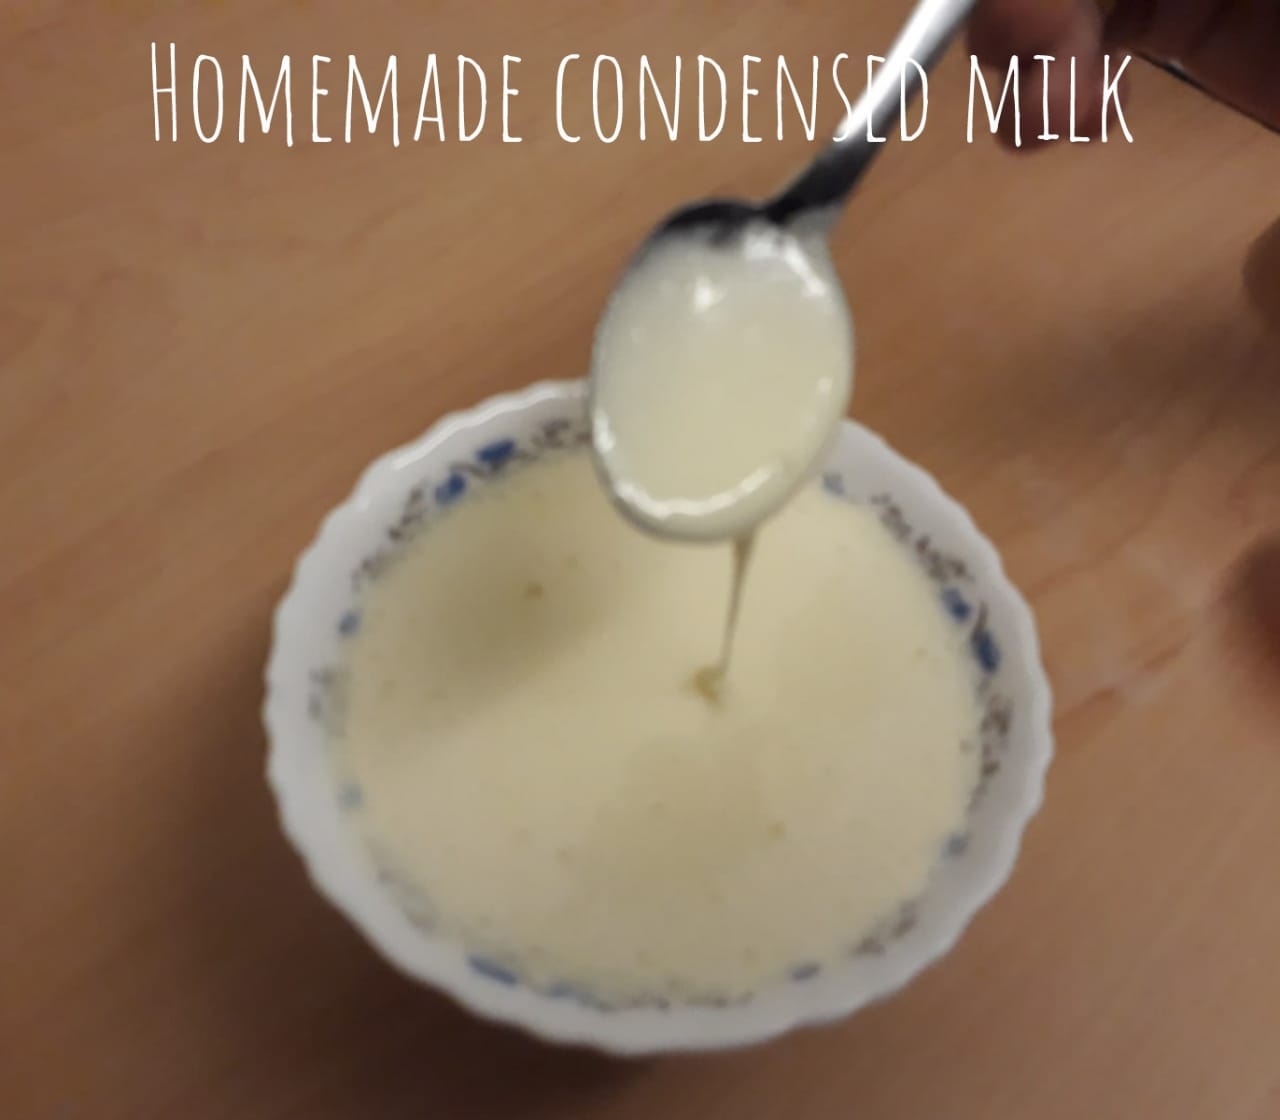 Homemade Condensed Milk Recipe